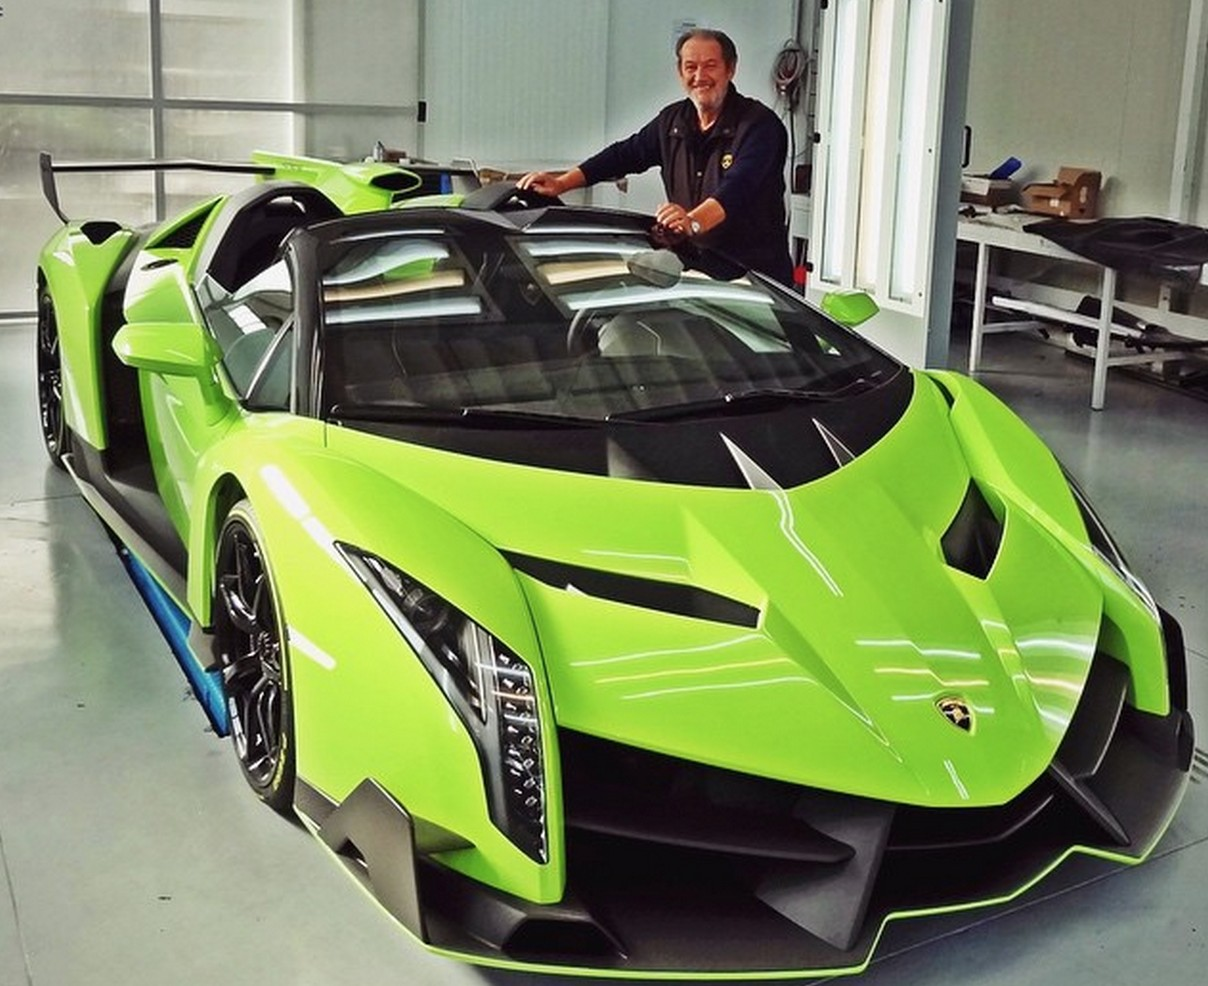 valentino balboni poses with verde singh lamborghini veneno roadster gtspirit. Black Bedroom Furniture Sets. Home Design Ideas